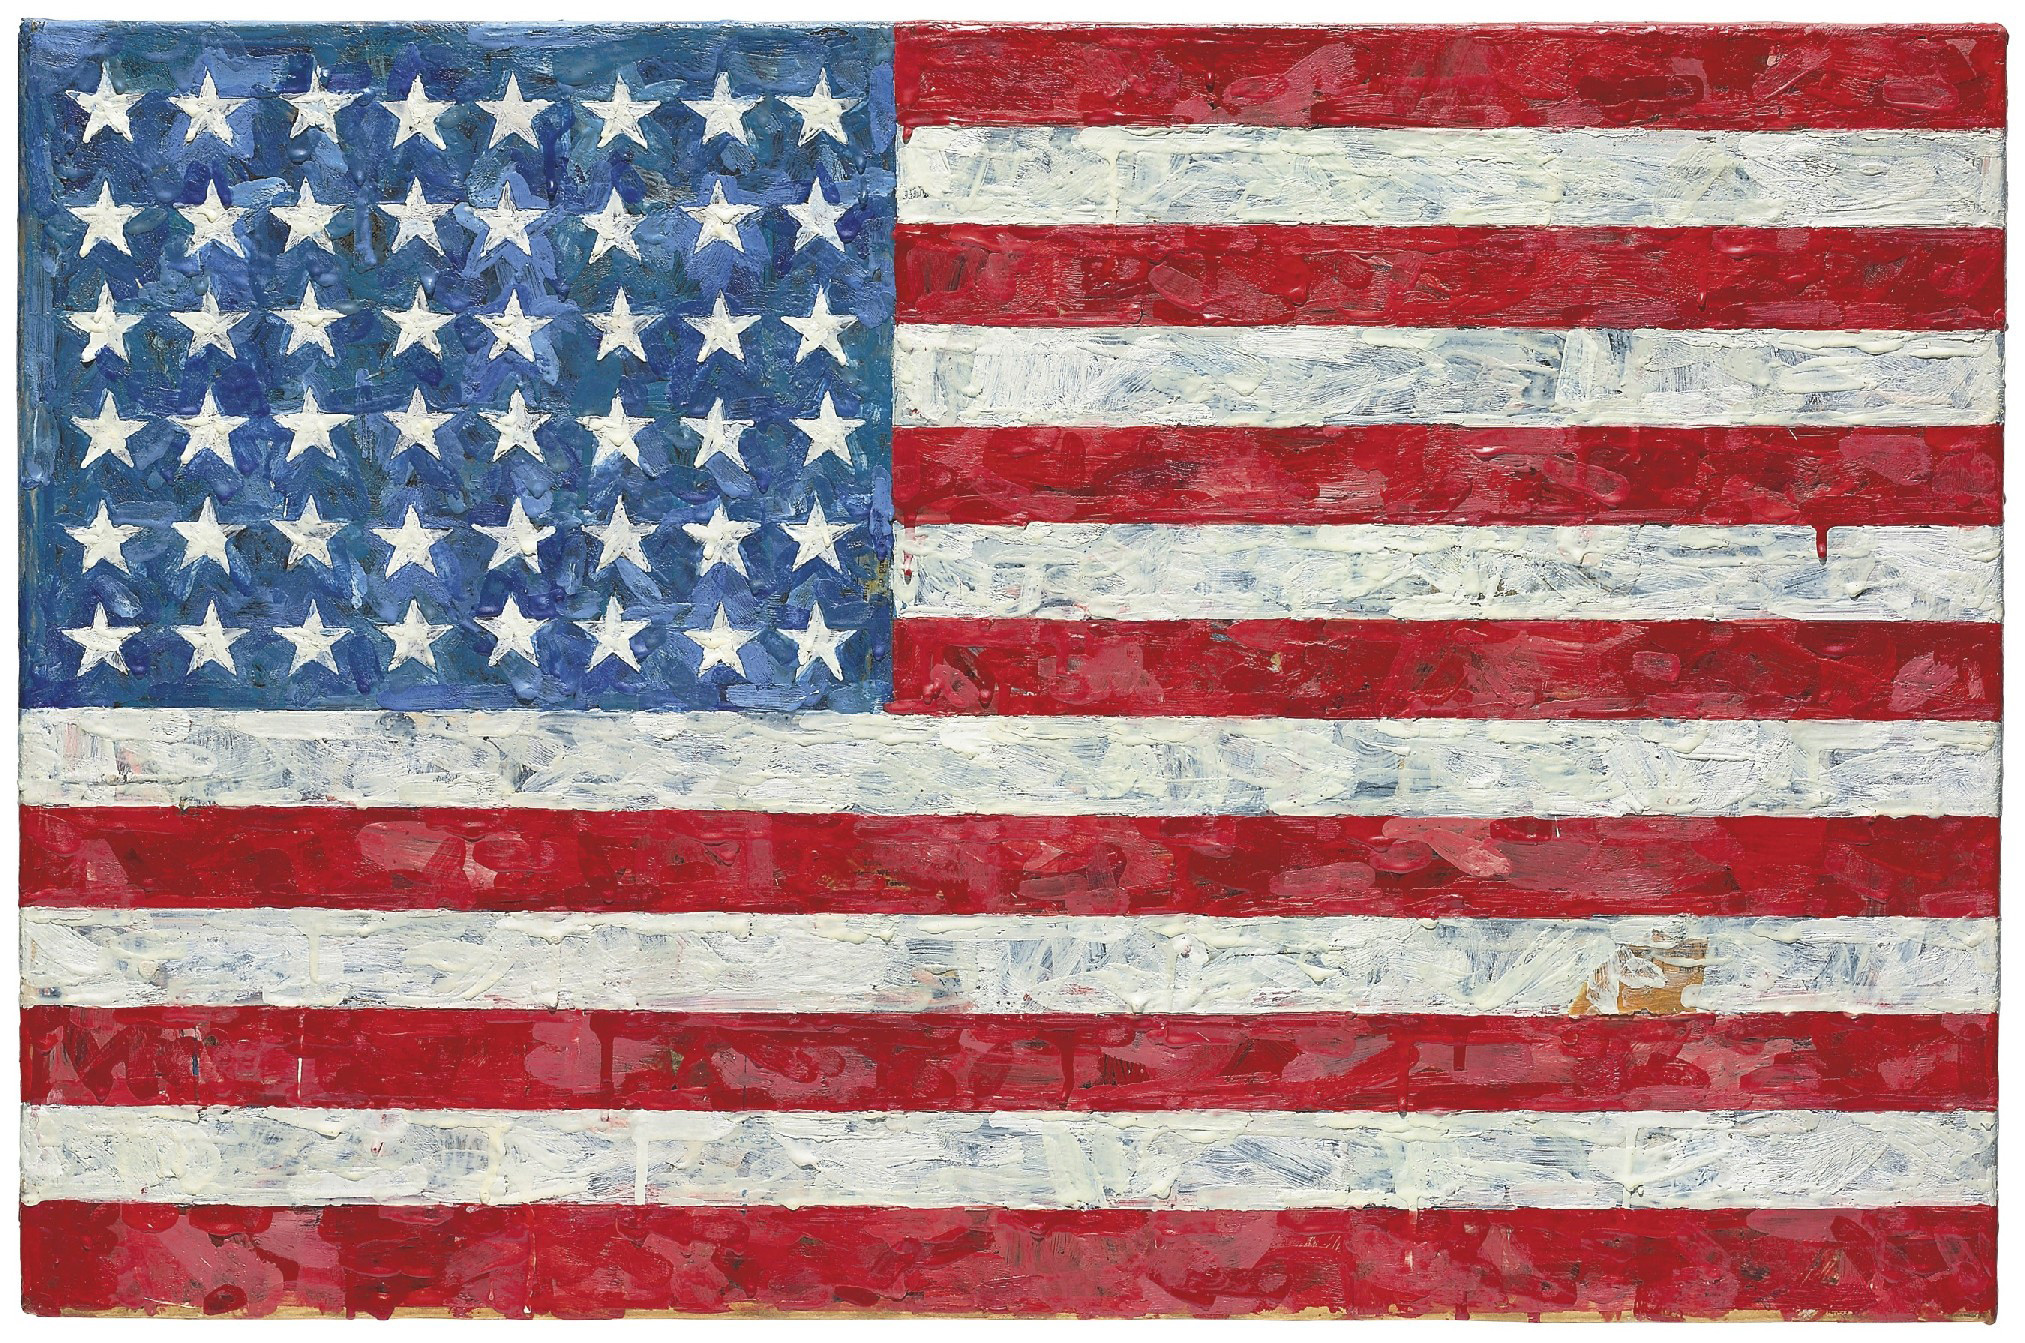 fourth of july art ten unconventional flags that make us